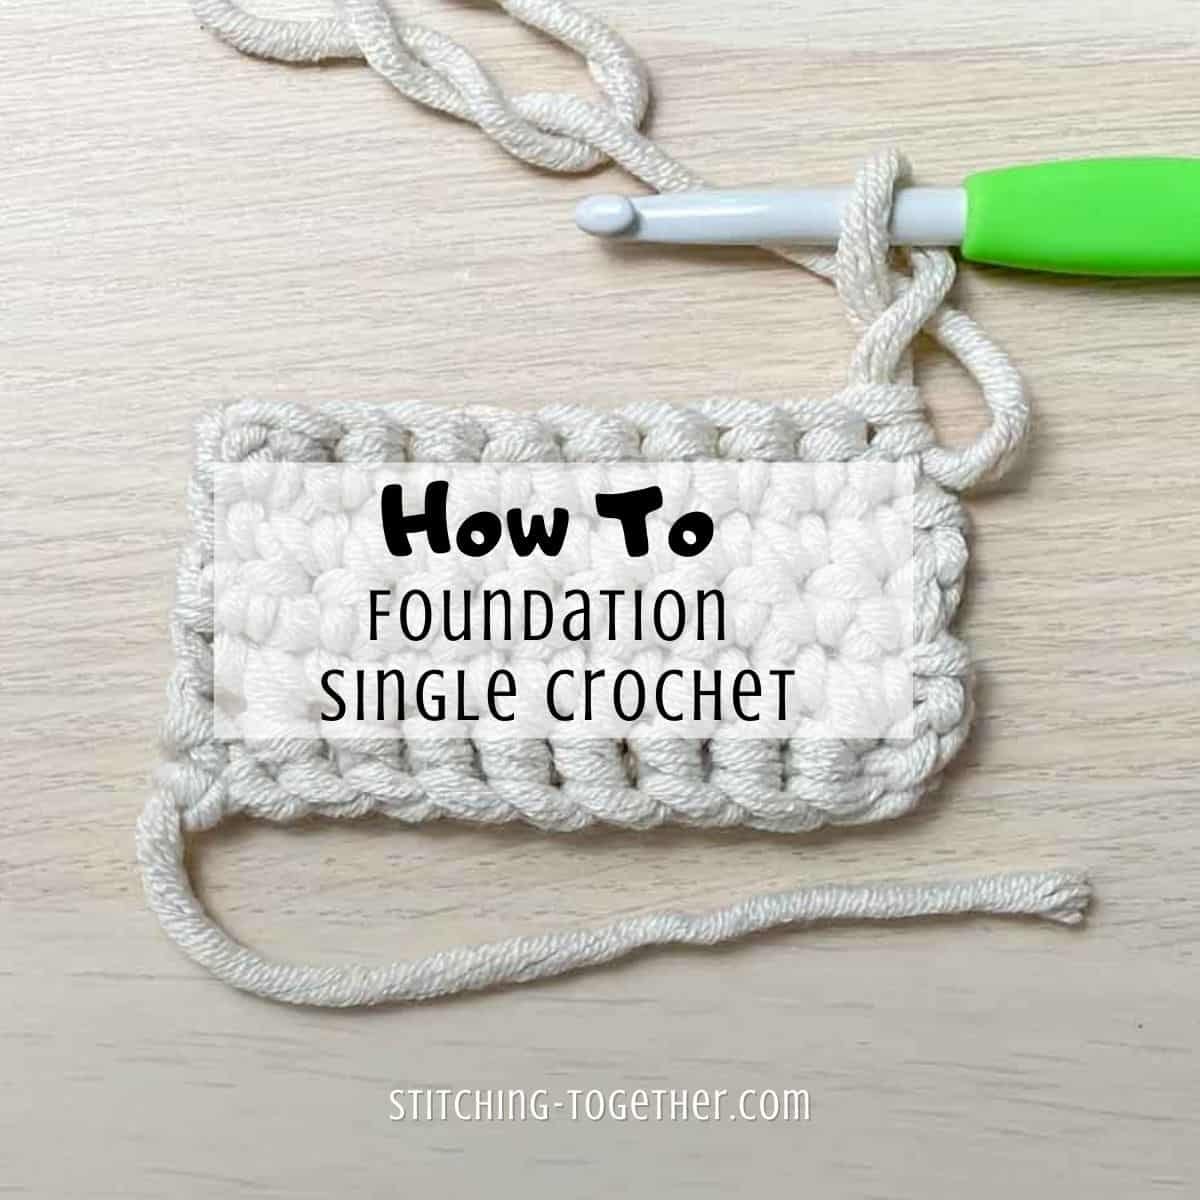 crochet swatch with wording for how to fsc